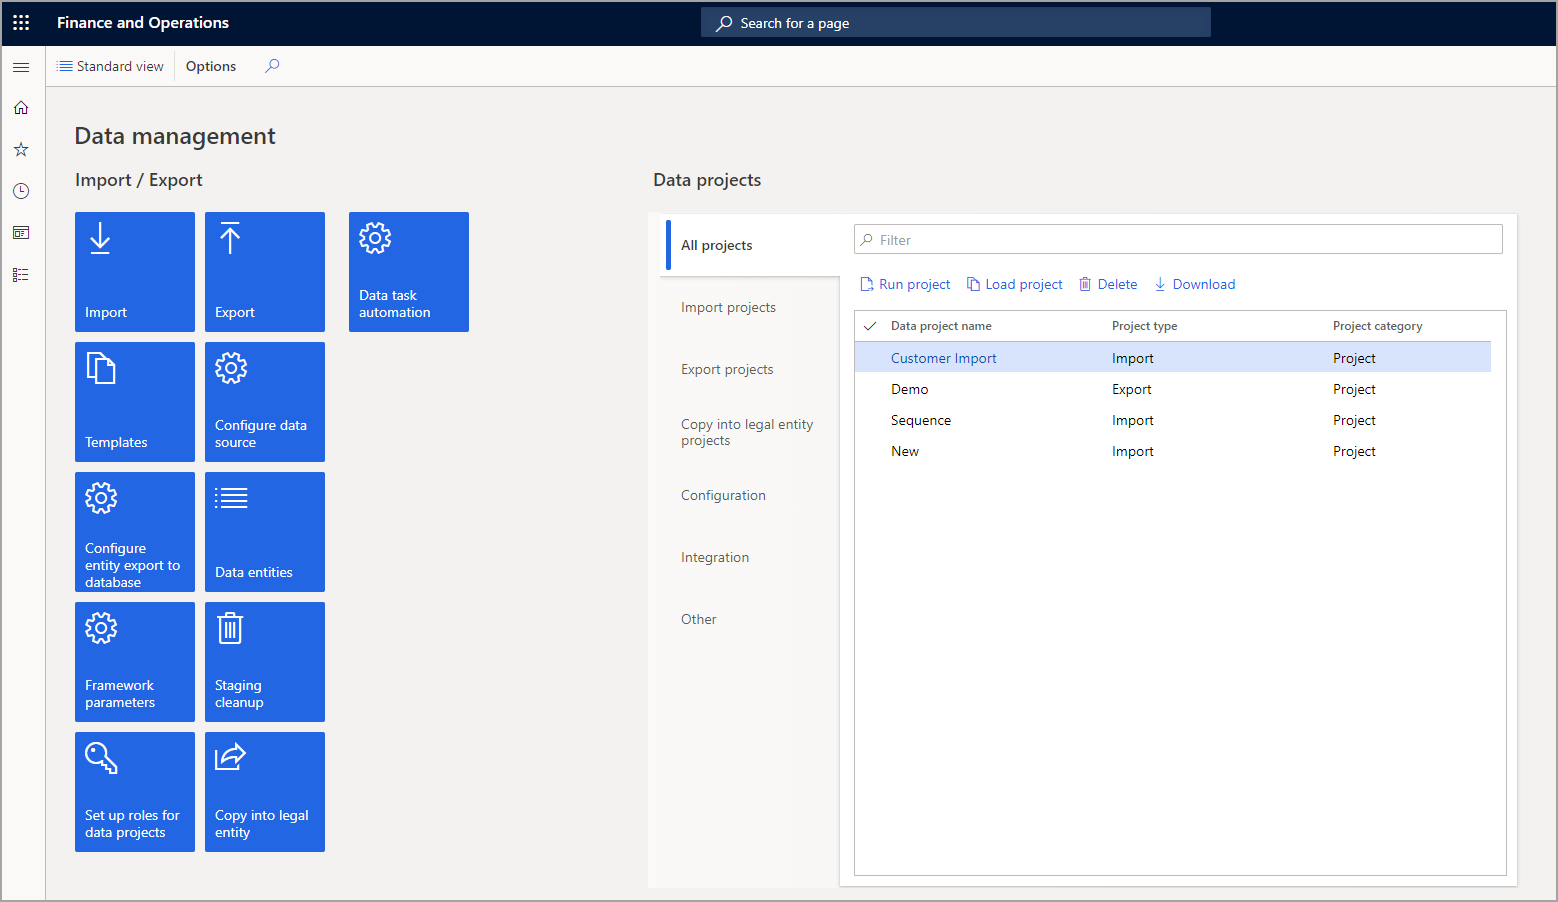 Screenshot of the Data management tiles in the Enhanced view.